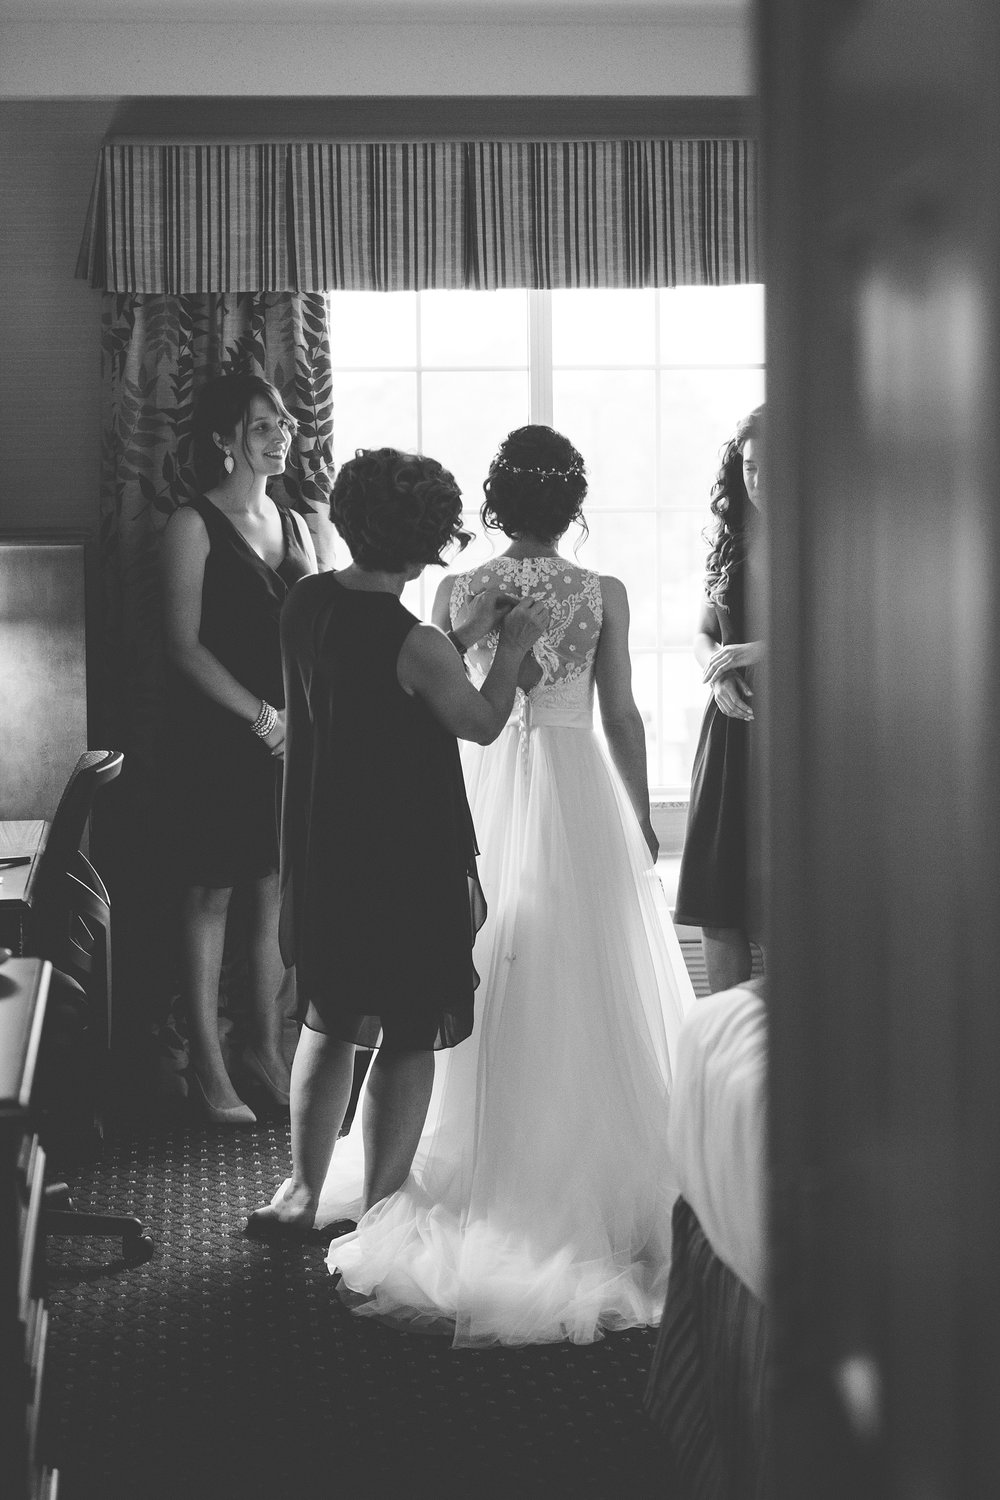 Brandon_Shafer_Photography_Lauren_Ethan_New_Vintage_Place_Grand_Rapids_Wedding_0014.jpg